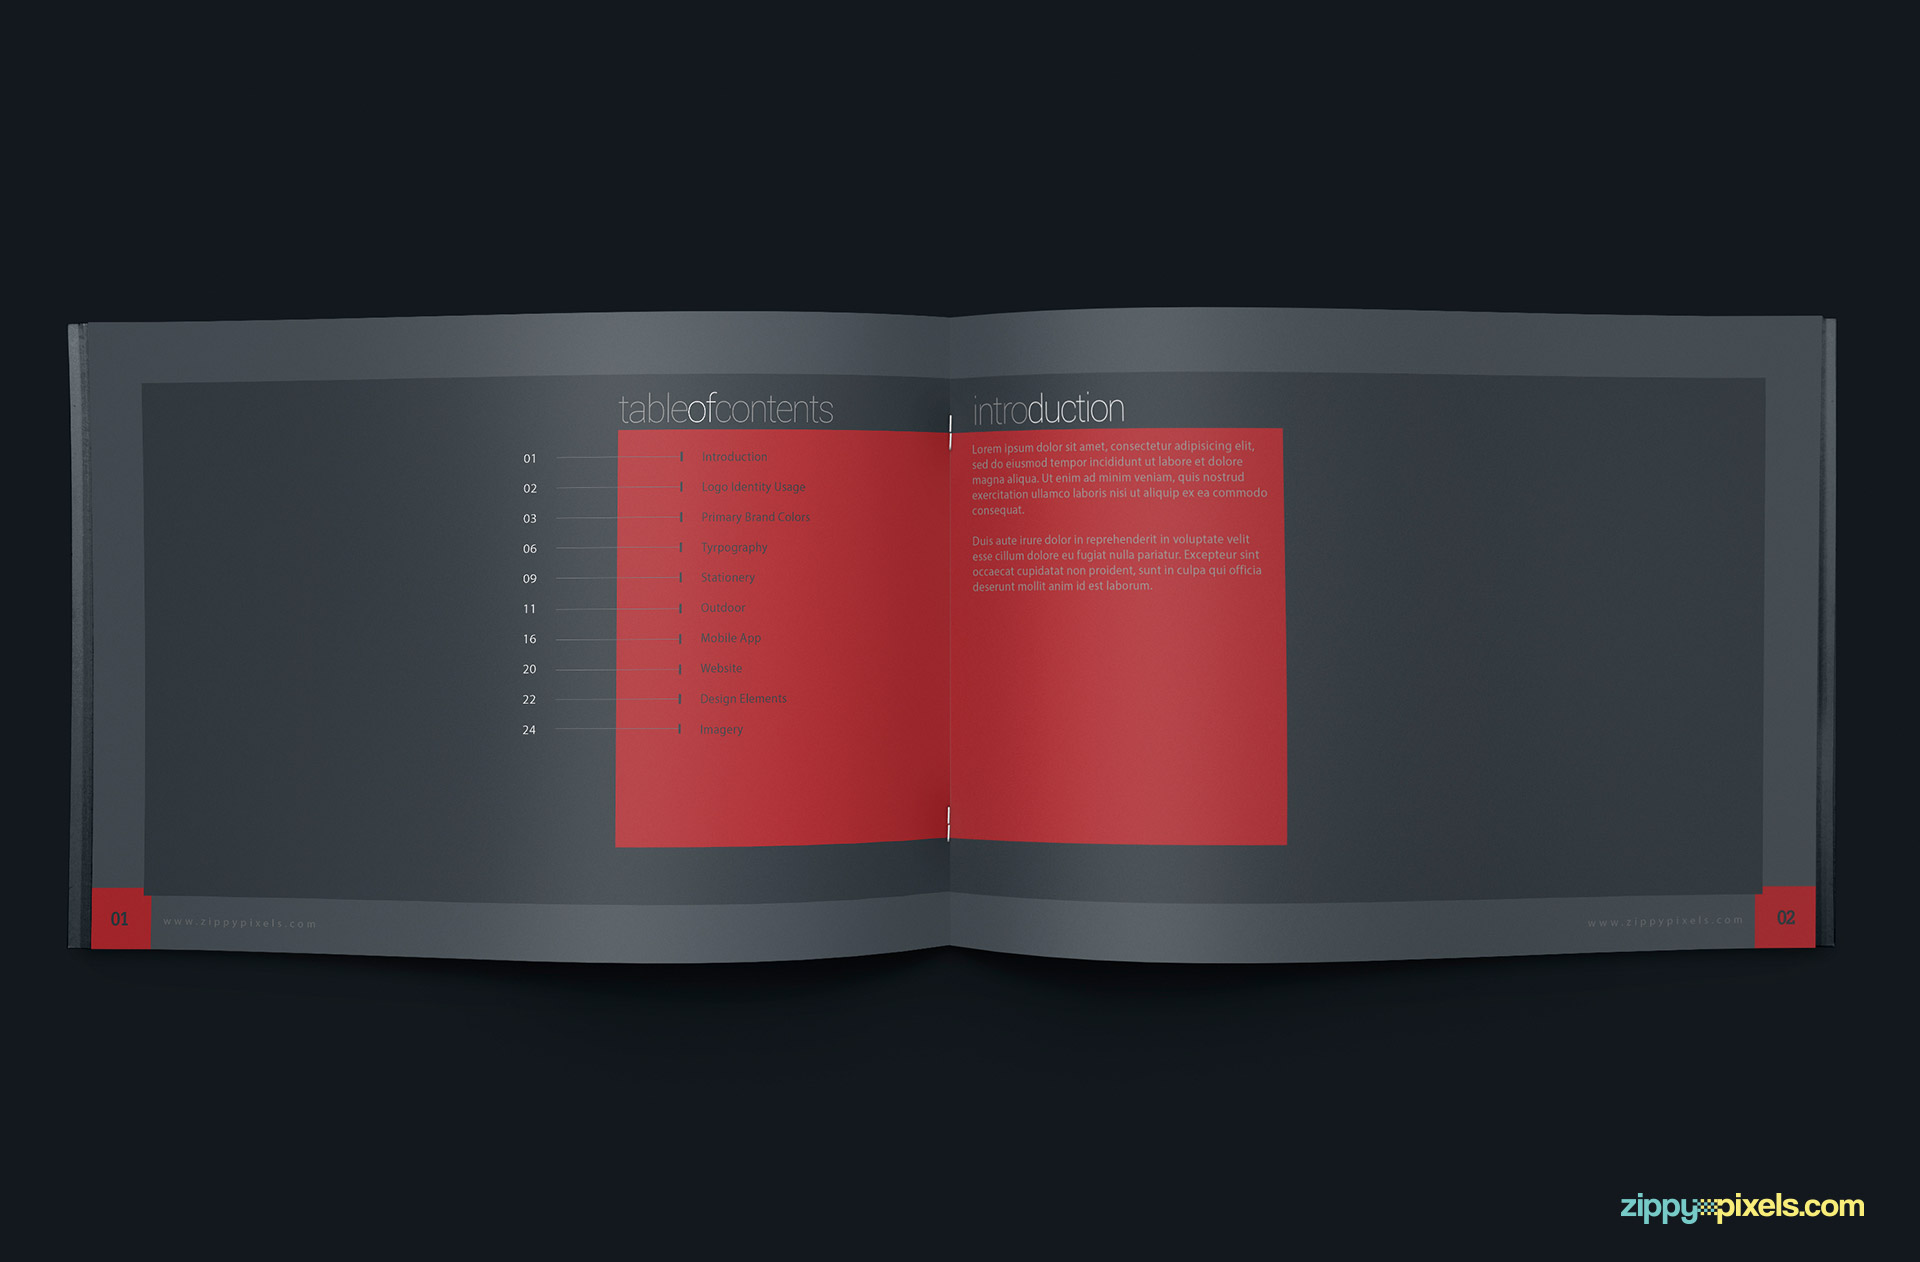 04-brand-book-1-table-of-contents